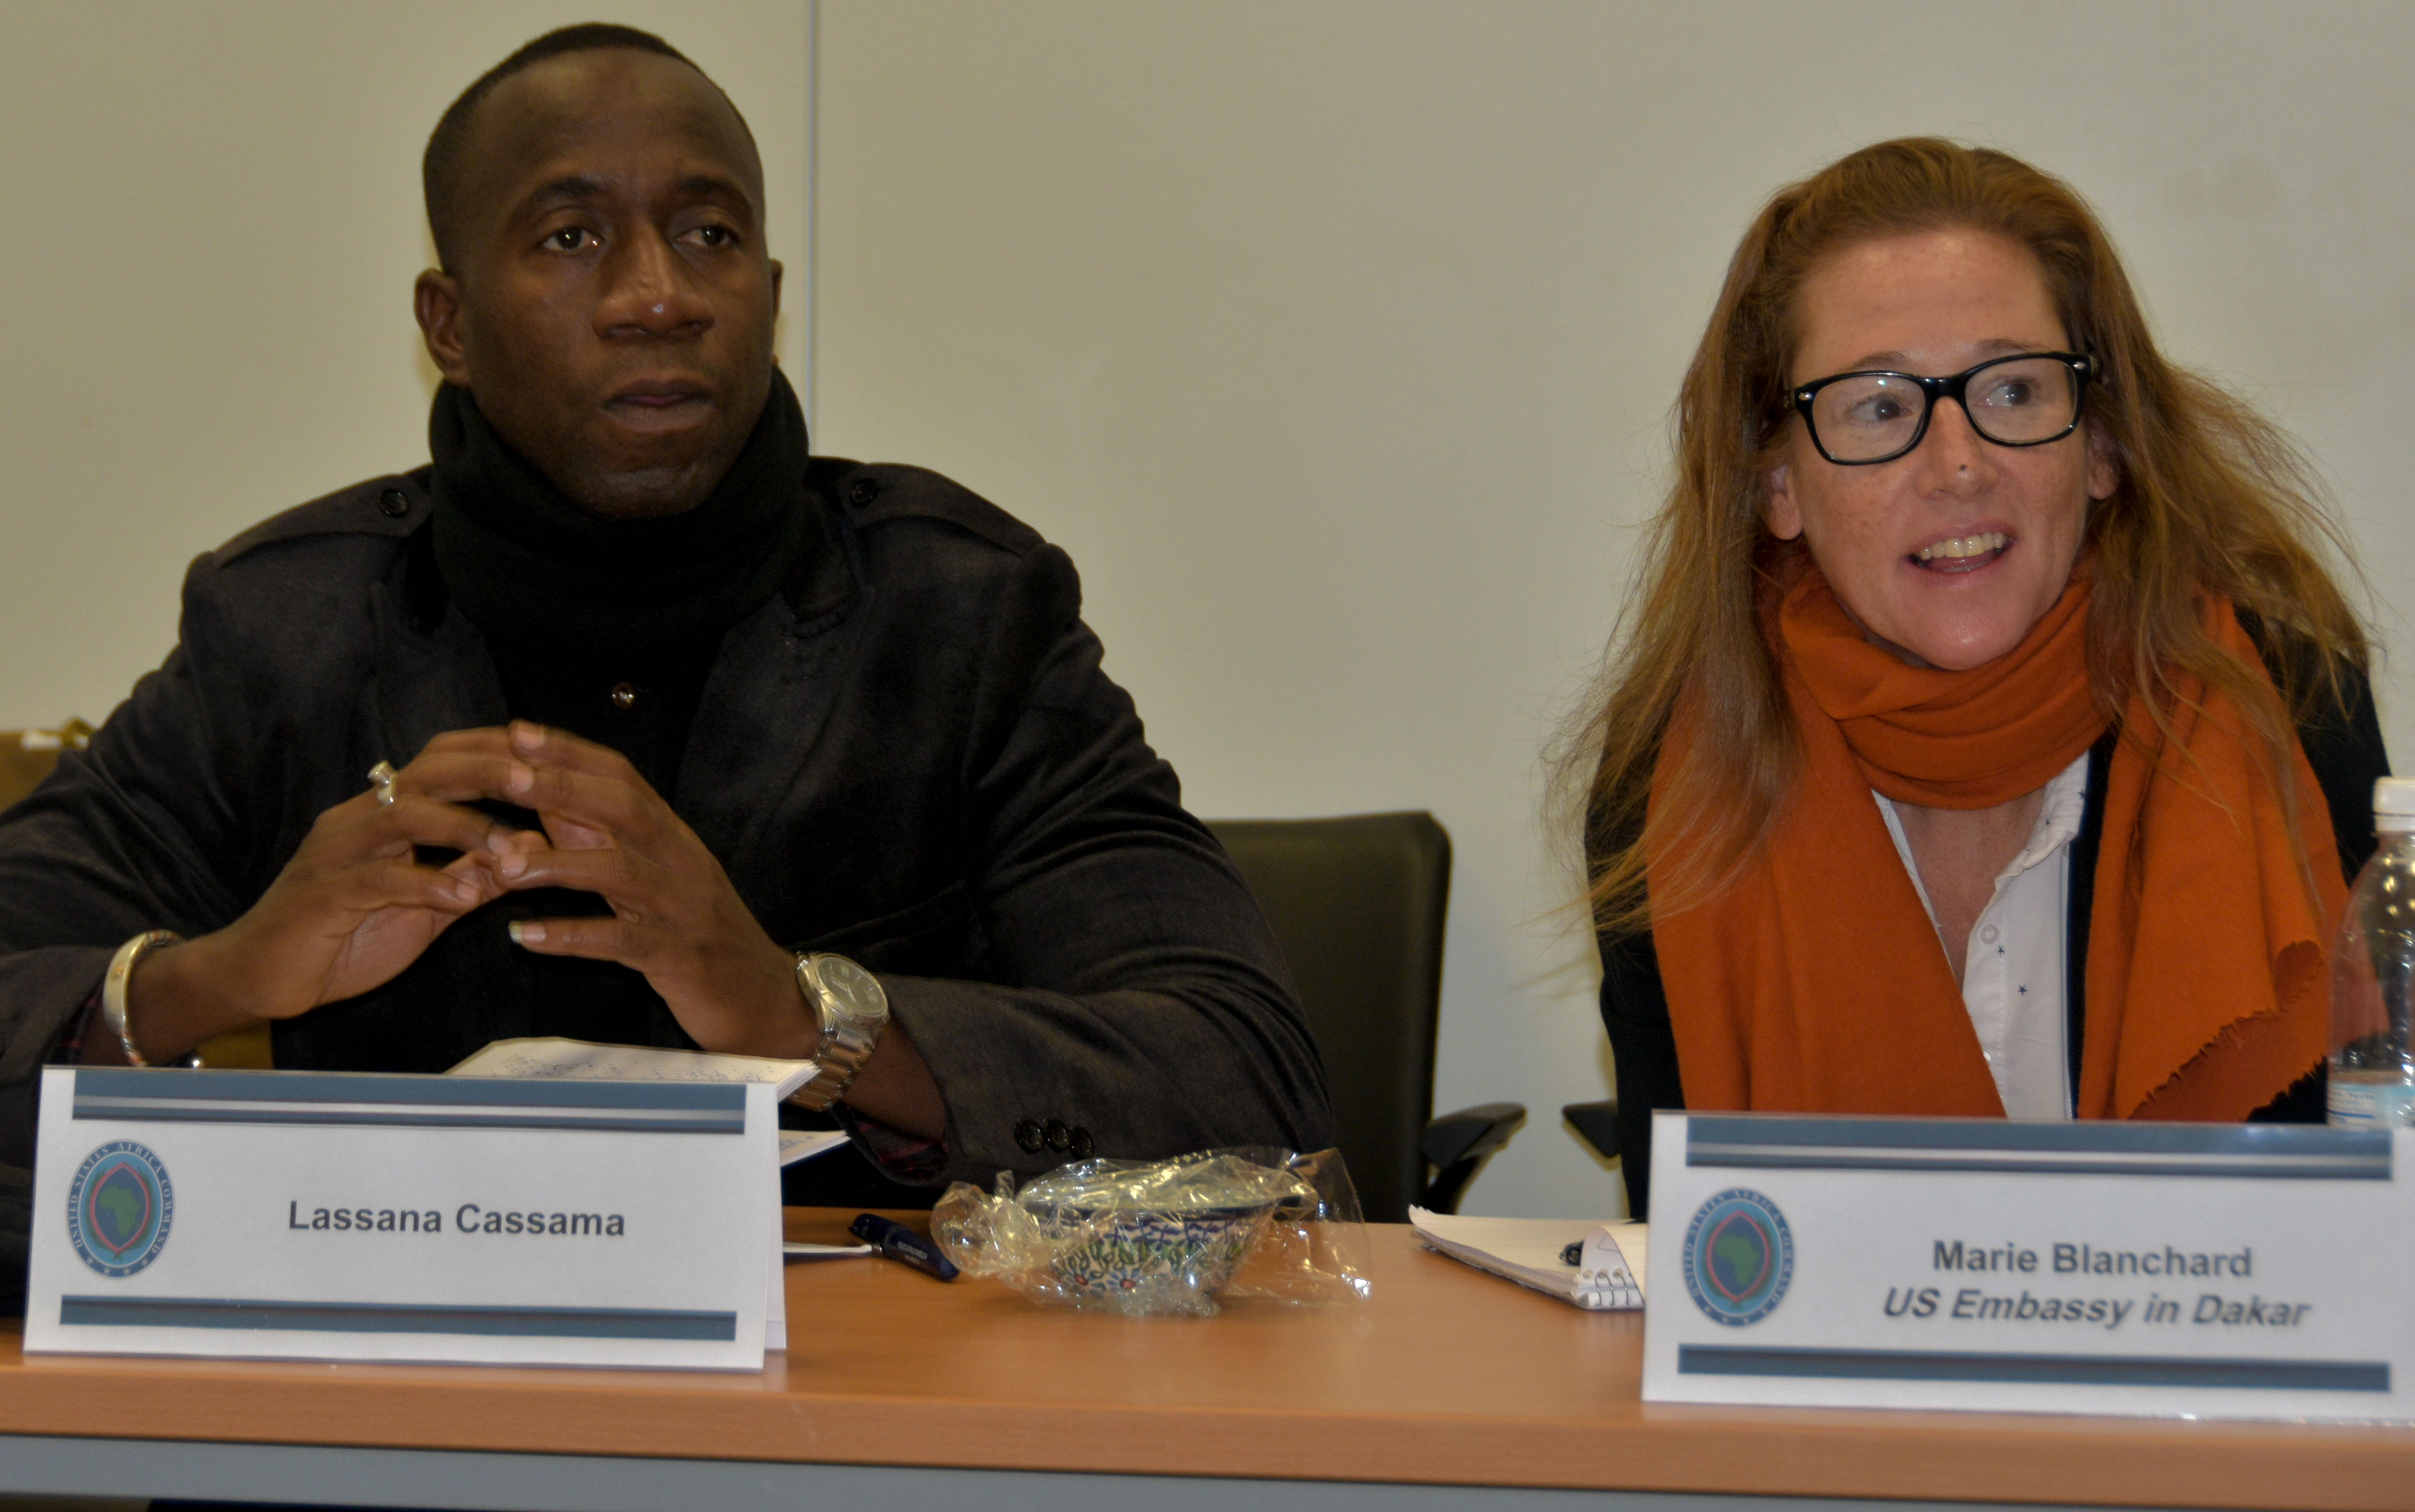 Lassana Gassama, editor of Capital Radio in Guinea Bissau, left, and Marie Blanchard, Press Attaché, U.S. Embassy in Dakar, listen to AFRICOM staff briefs.  Journalists from various news organizations in Senegal and Guinea Bissau visited U.S. Africa Command, Stuttgart, Germany, Dec. 11-14, 2017. AFRICOM staff provided briefs throughout the week which culminated in an interview of Lt. Gen. James C. Vechery, Deputy to the Commander for Military Operations, U.S. Africa Command.